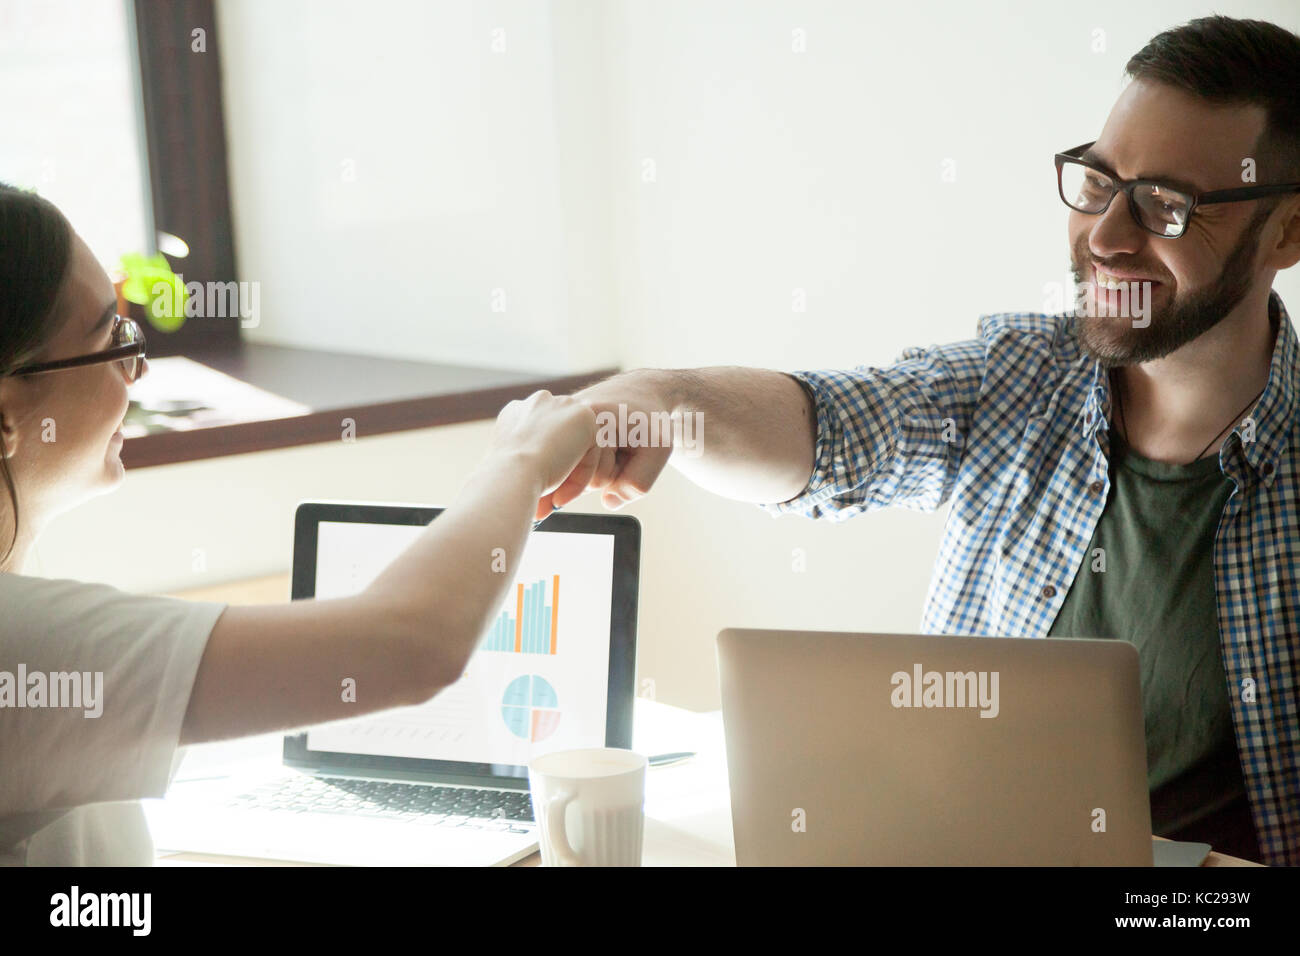 Celebrating job well done. Two businesspeople fist bumping in winning gesture, rising stats on their laptop. - Stock Image